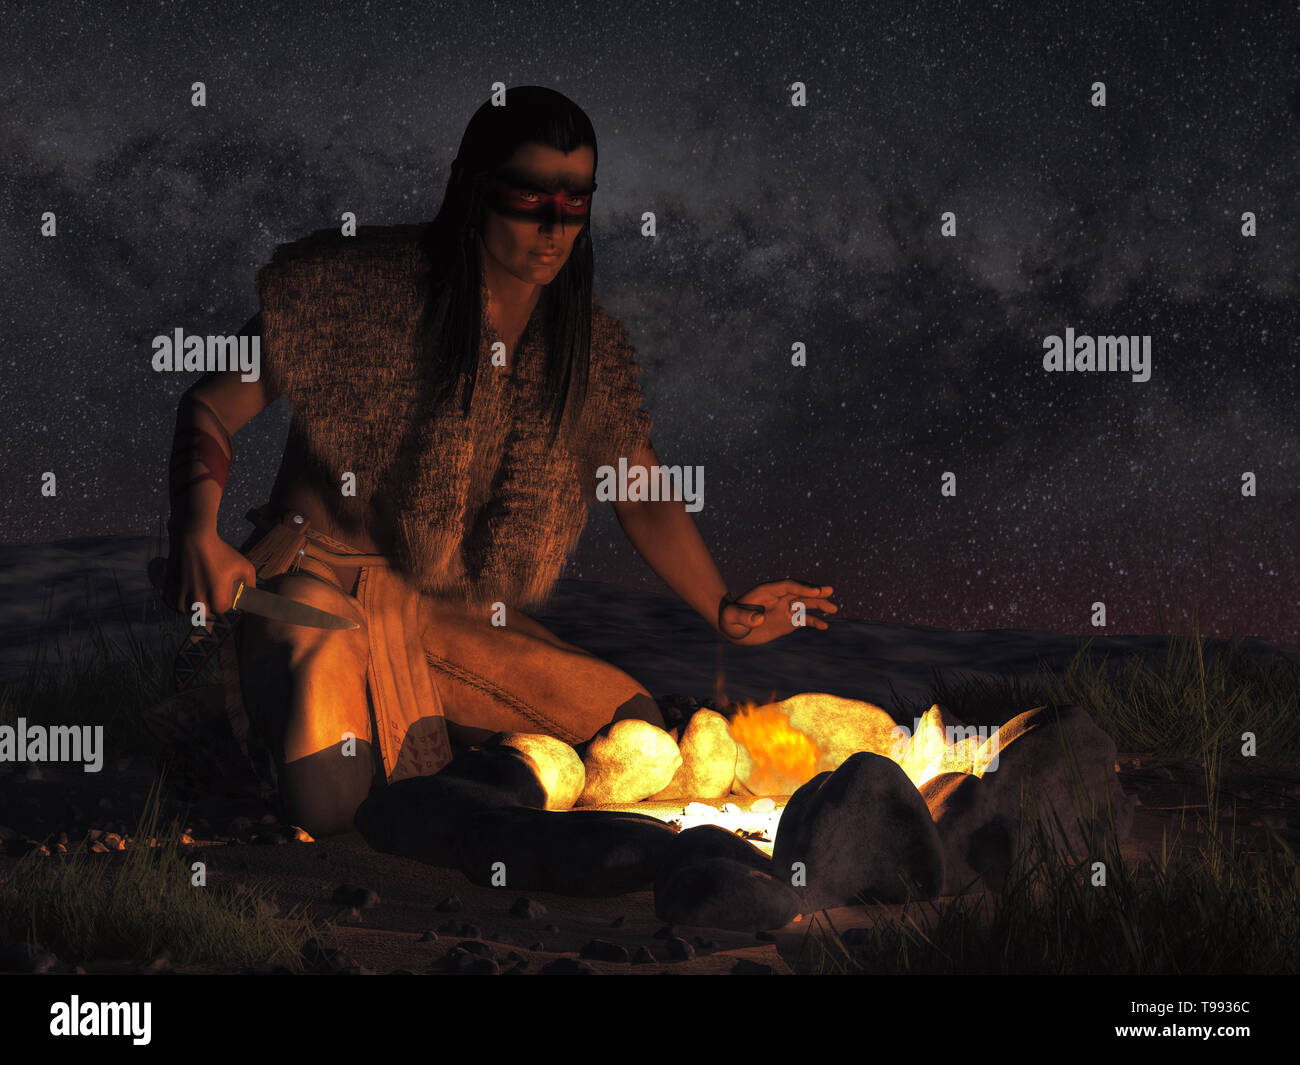 A Native American warrior sits by a campfire in the dark of night somewhere in the plains of the American Wild West, wearing warpaint on his face - Stock Image